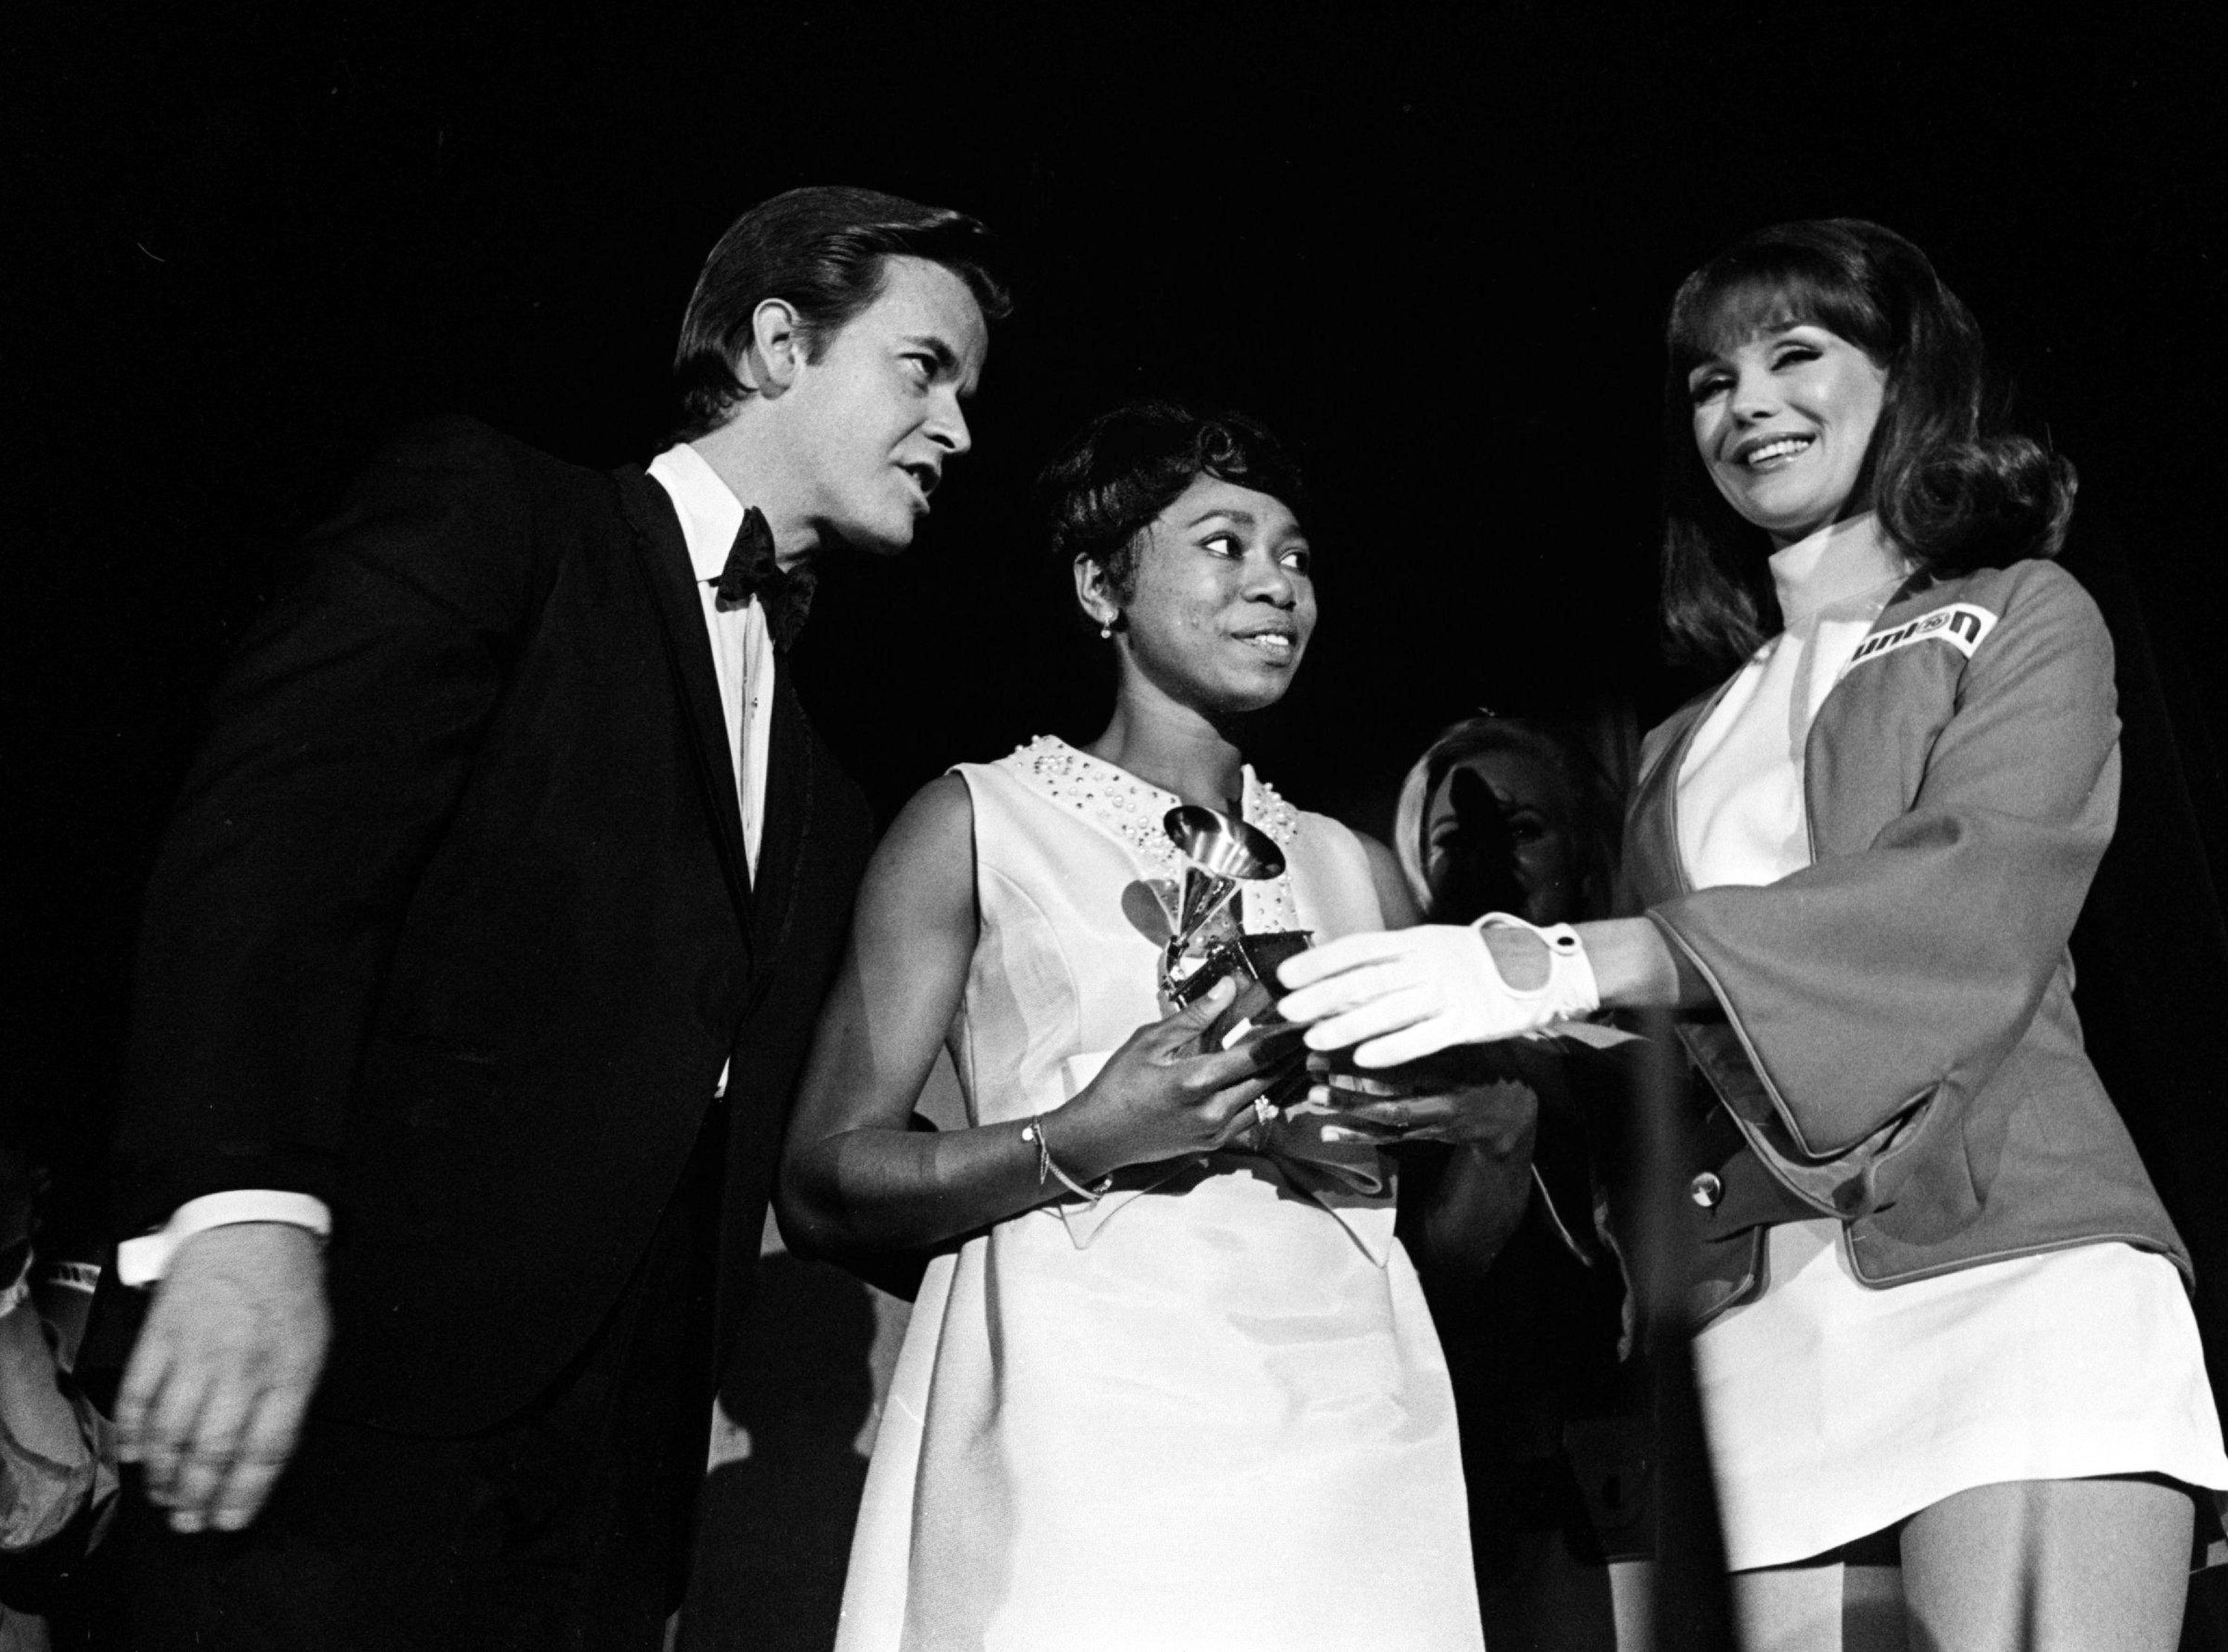 "Zelma Redding, center, is accepting one of two awards for her late husband, Otis Redding, during the 11th annual Grammy Award show at the National Guard Armory in Nashville March 12, 1969. The singer, who was killed in a plane crash last year, won the Best Rhythm and Blues Male Performance and Best Rhythm and Blue Song awards for ""Dock Of The Bay."" Master of ceremonies Dick Clark, left, looks on."